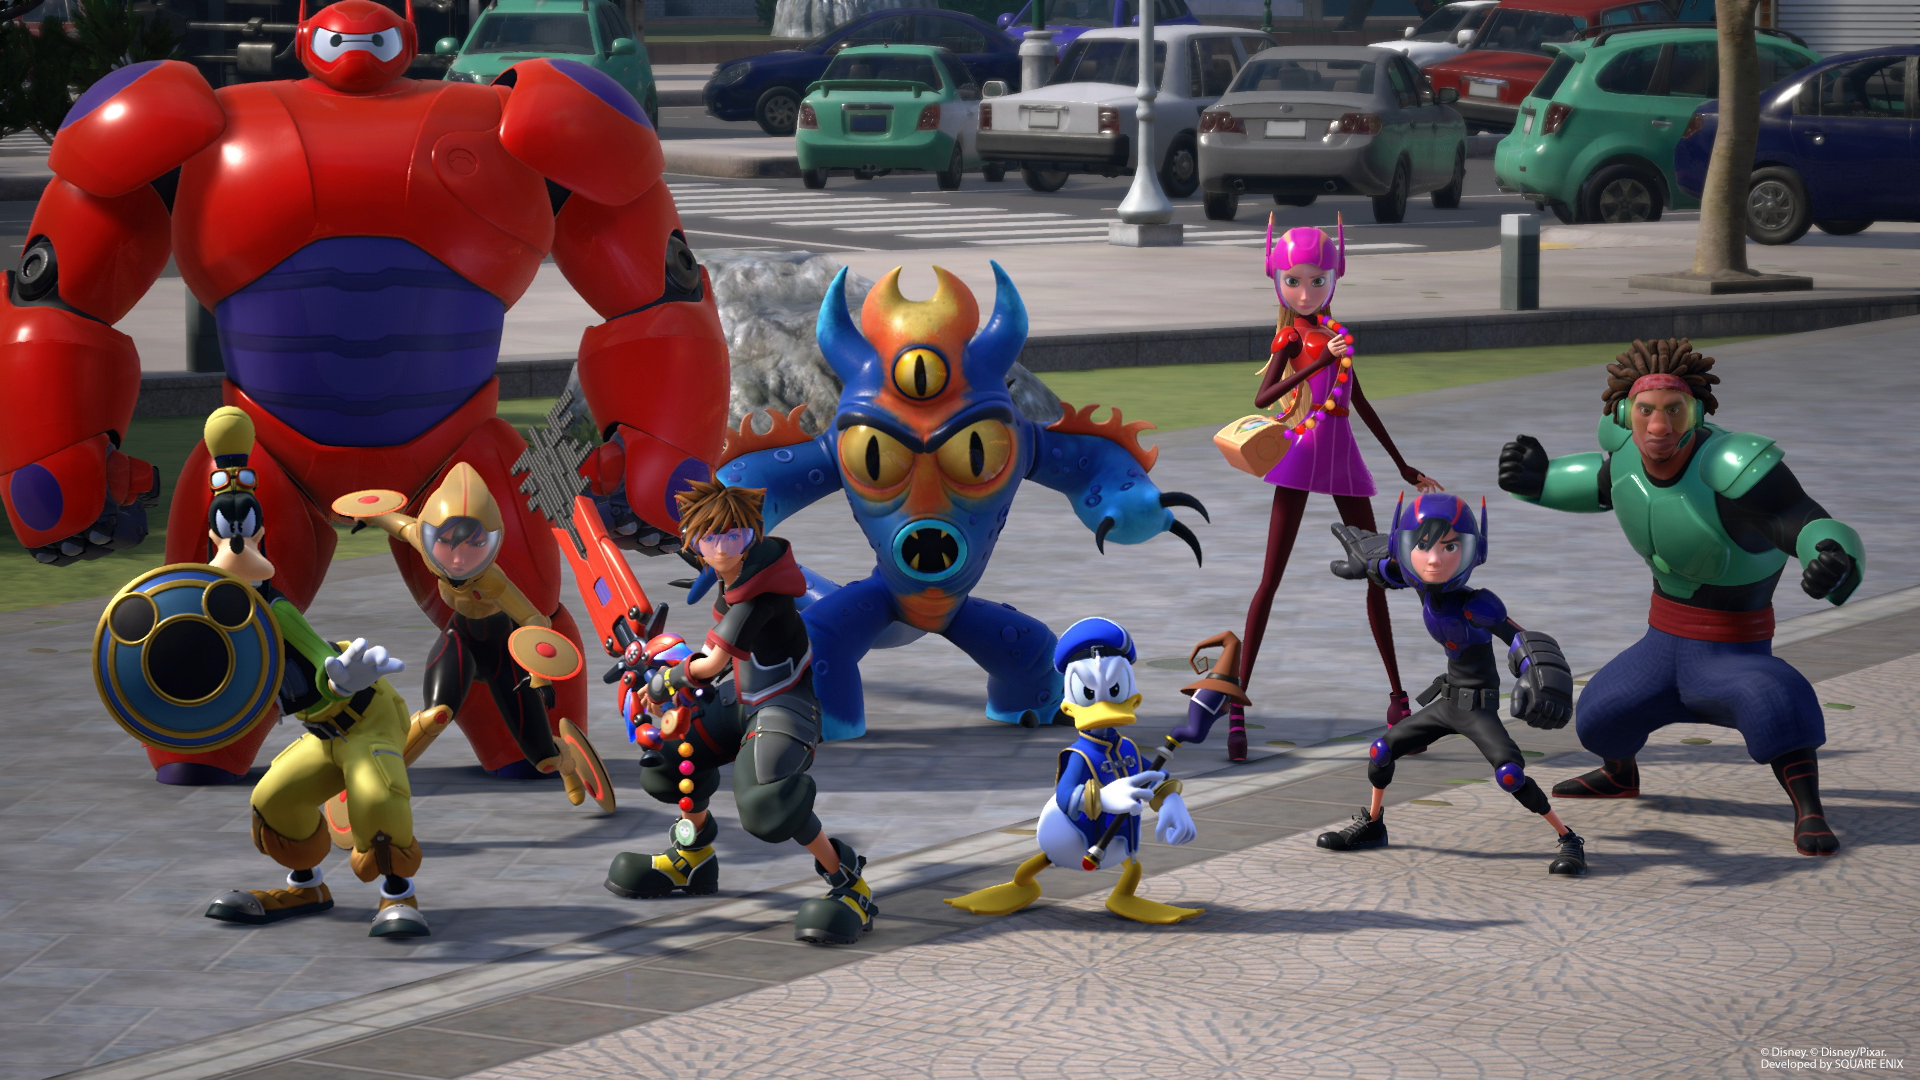 Kingdom Hearts 3 big Hero 6 characters